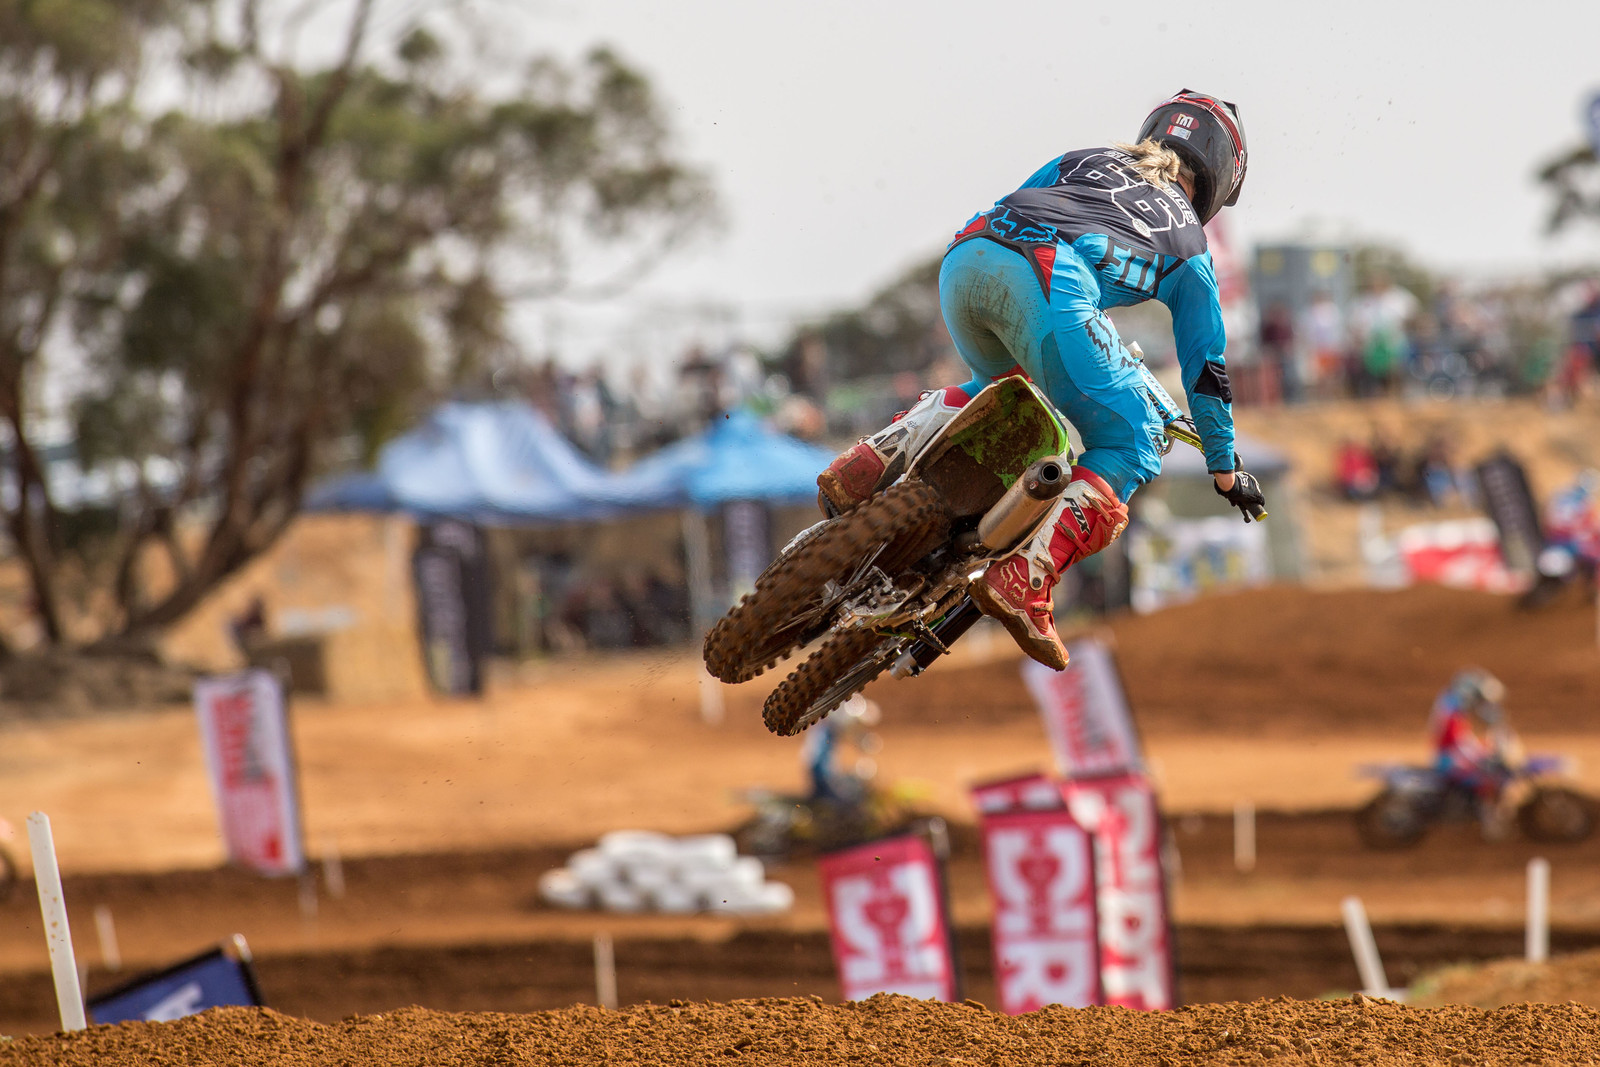 Meghan Rutledge - Australian Motul Mx Championships: Round 4, Murray Bridge - Motocross Pictures - Vital MX